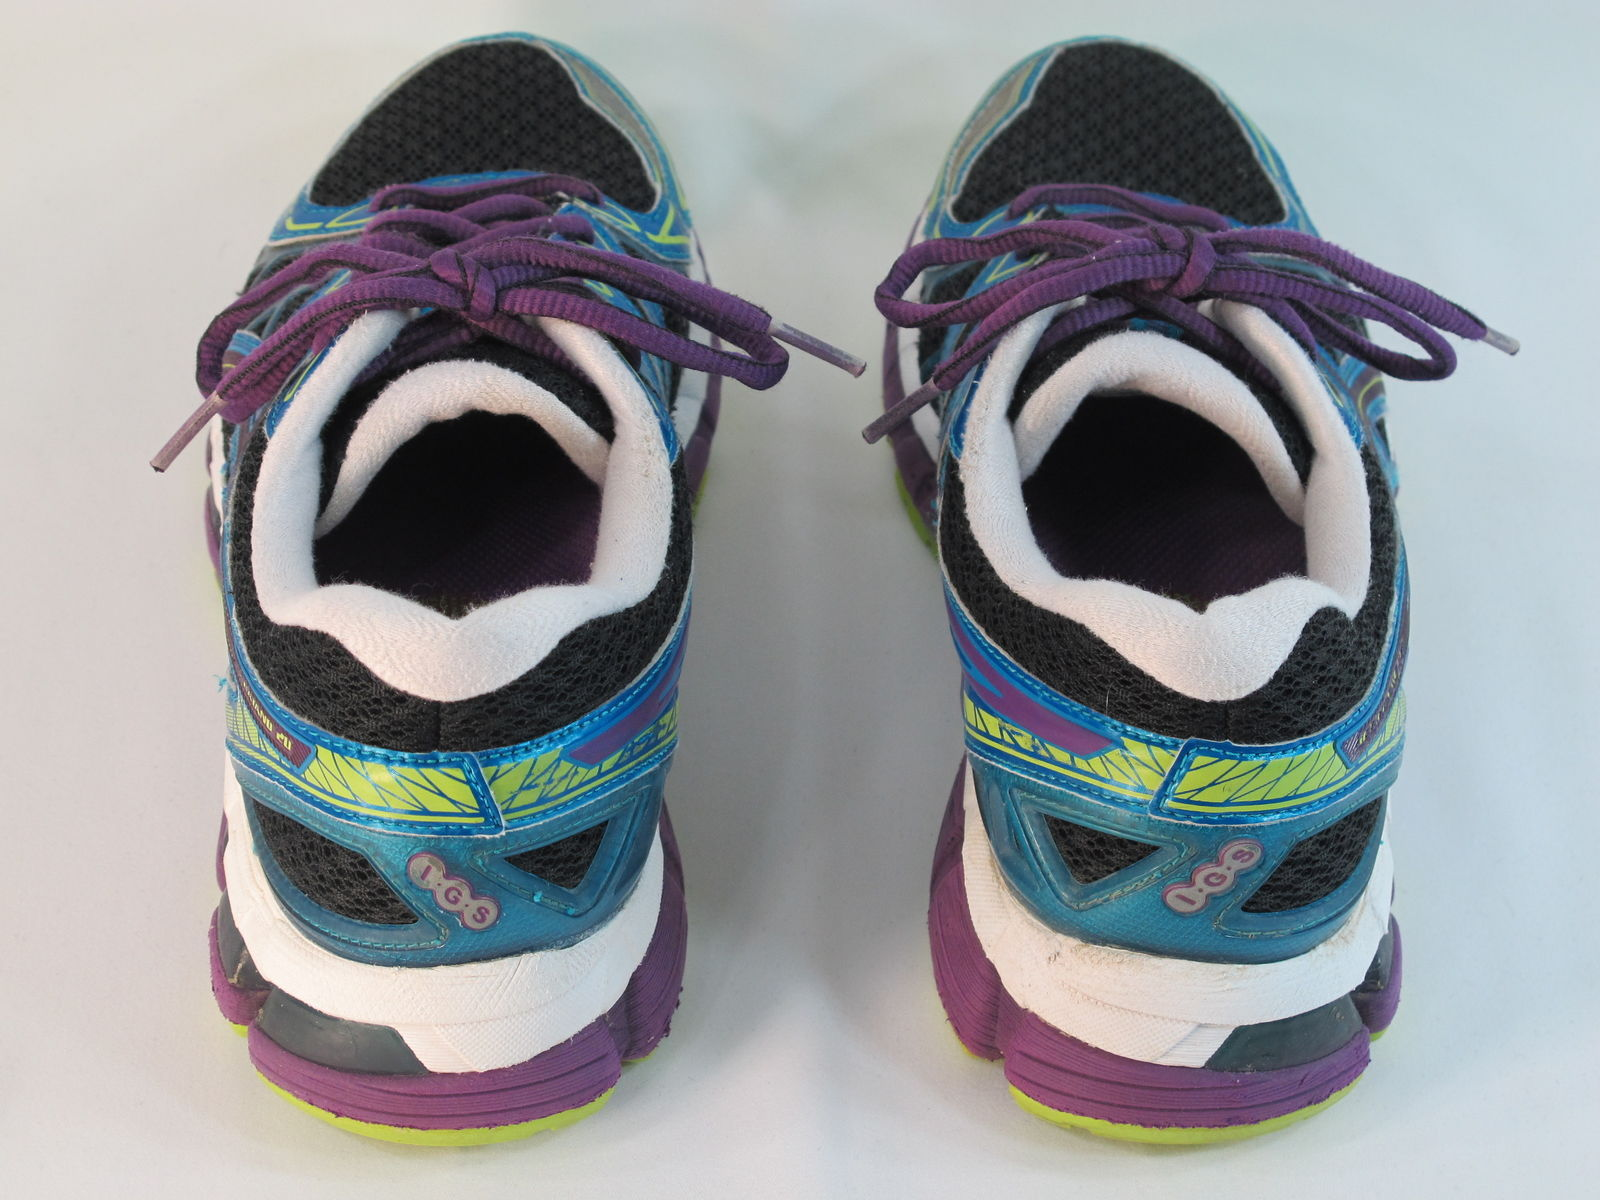 ASICS Gel Kayano 20 Running Shoes Women's Size 8.5 US Excellent Plus Condition